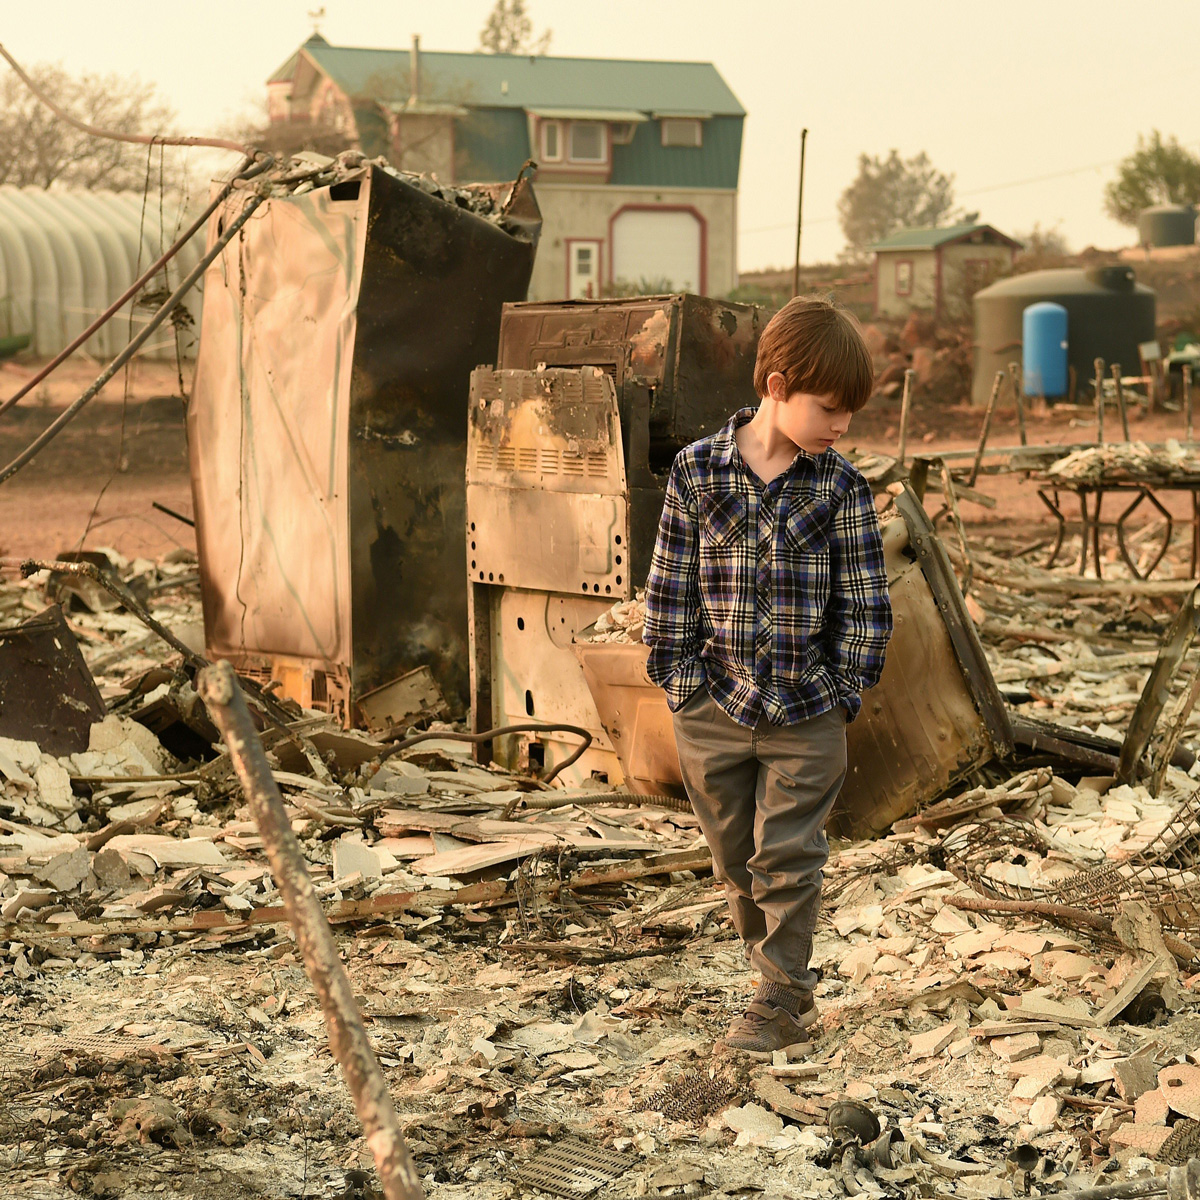 A year after the Camp Fire, life is still on hold